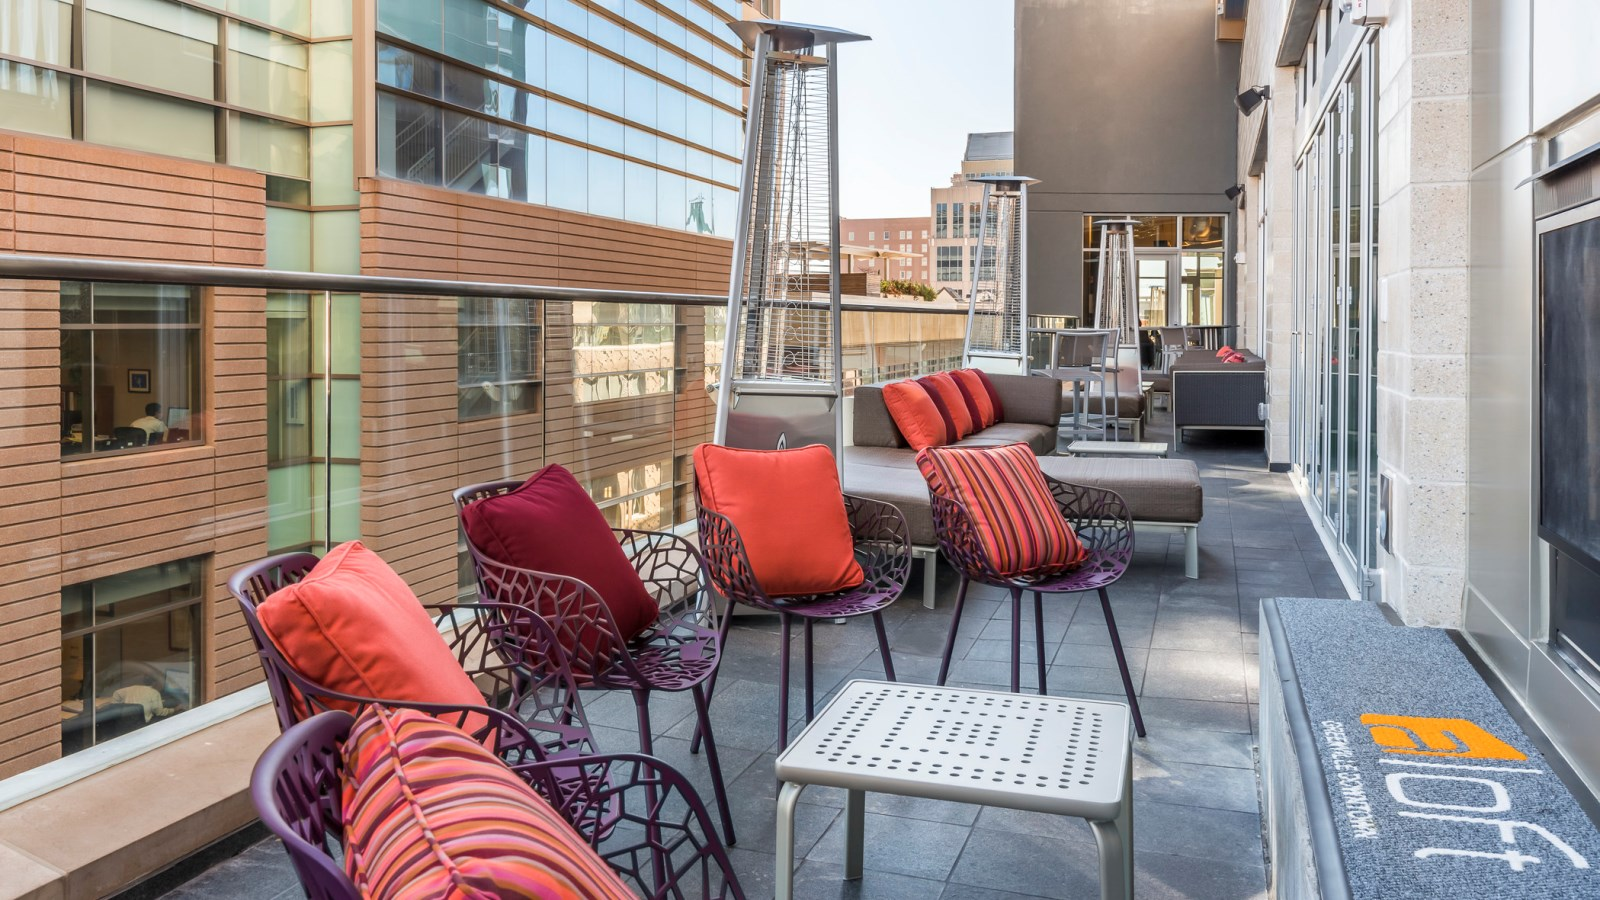 Aloft Greenville Downtown - The Ledge